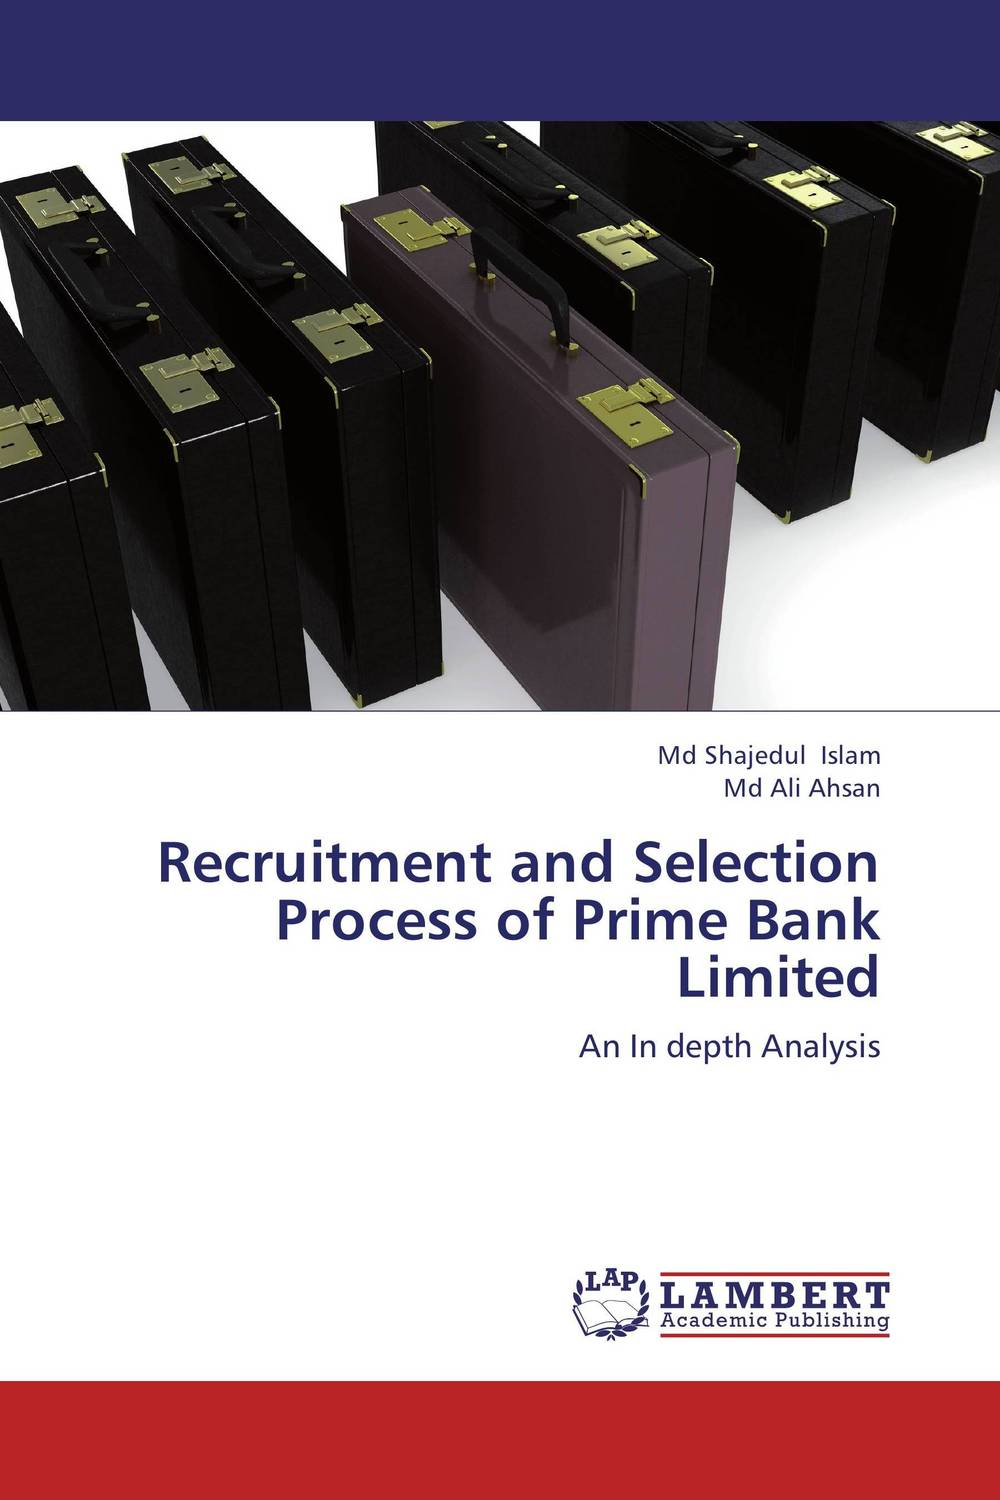 Recruitment and Selection Process of Prime Bank Limited mehdi mohammadi poorangi piao hui ying and arash najmaei e hrm strategies for recruitment